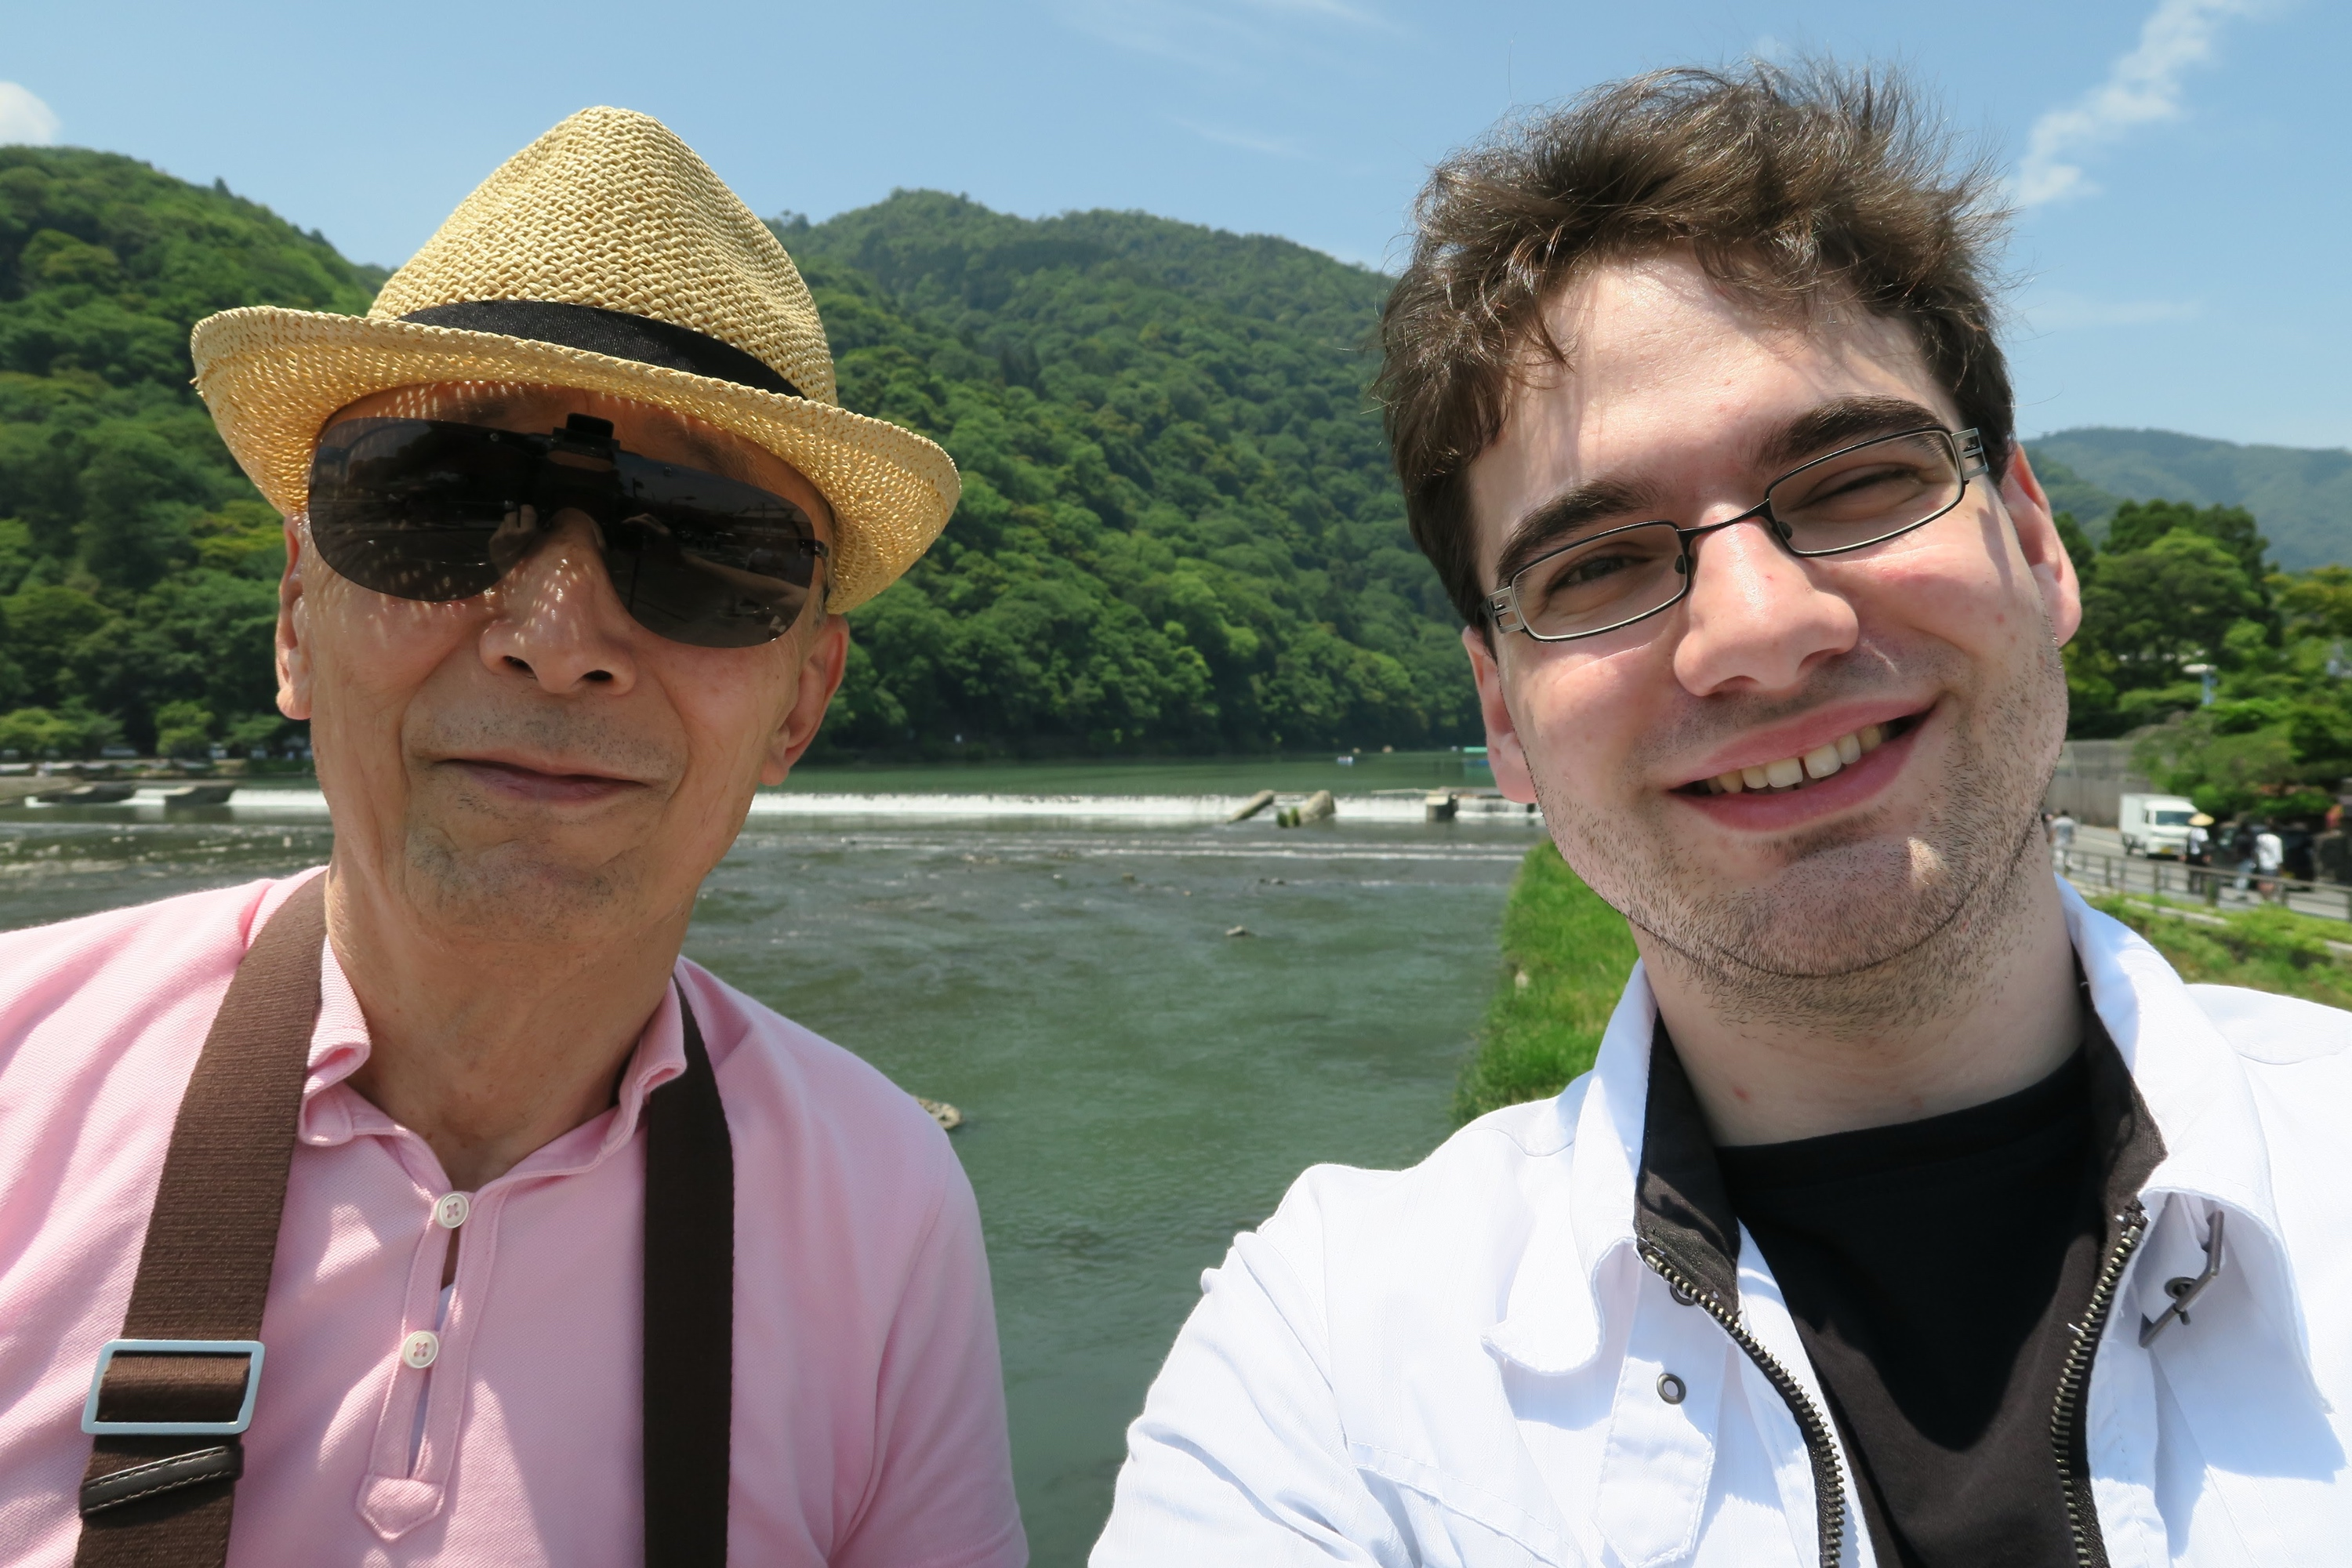 Having fun in Arashiyama during summer.